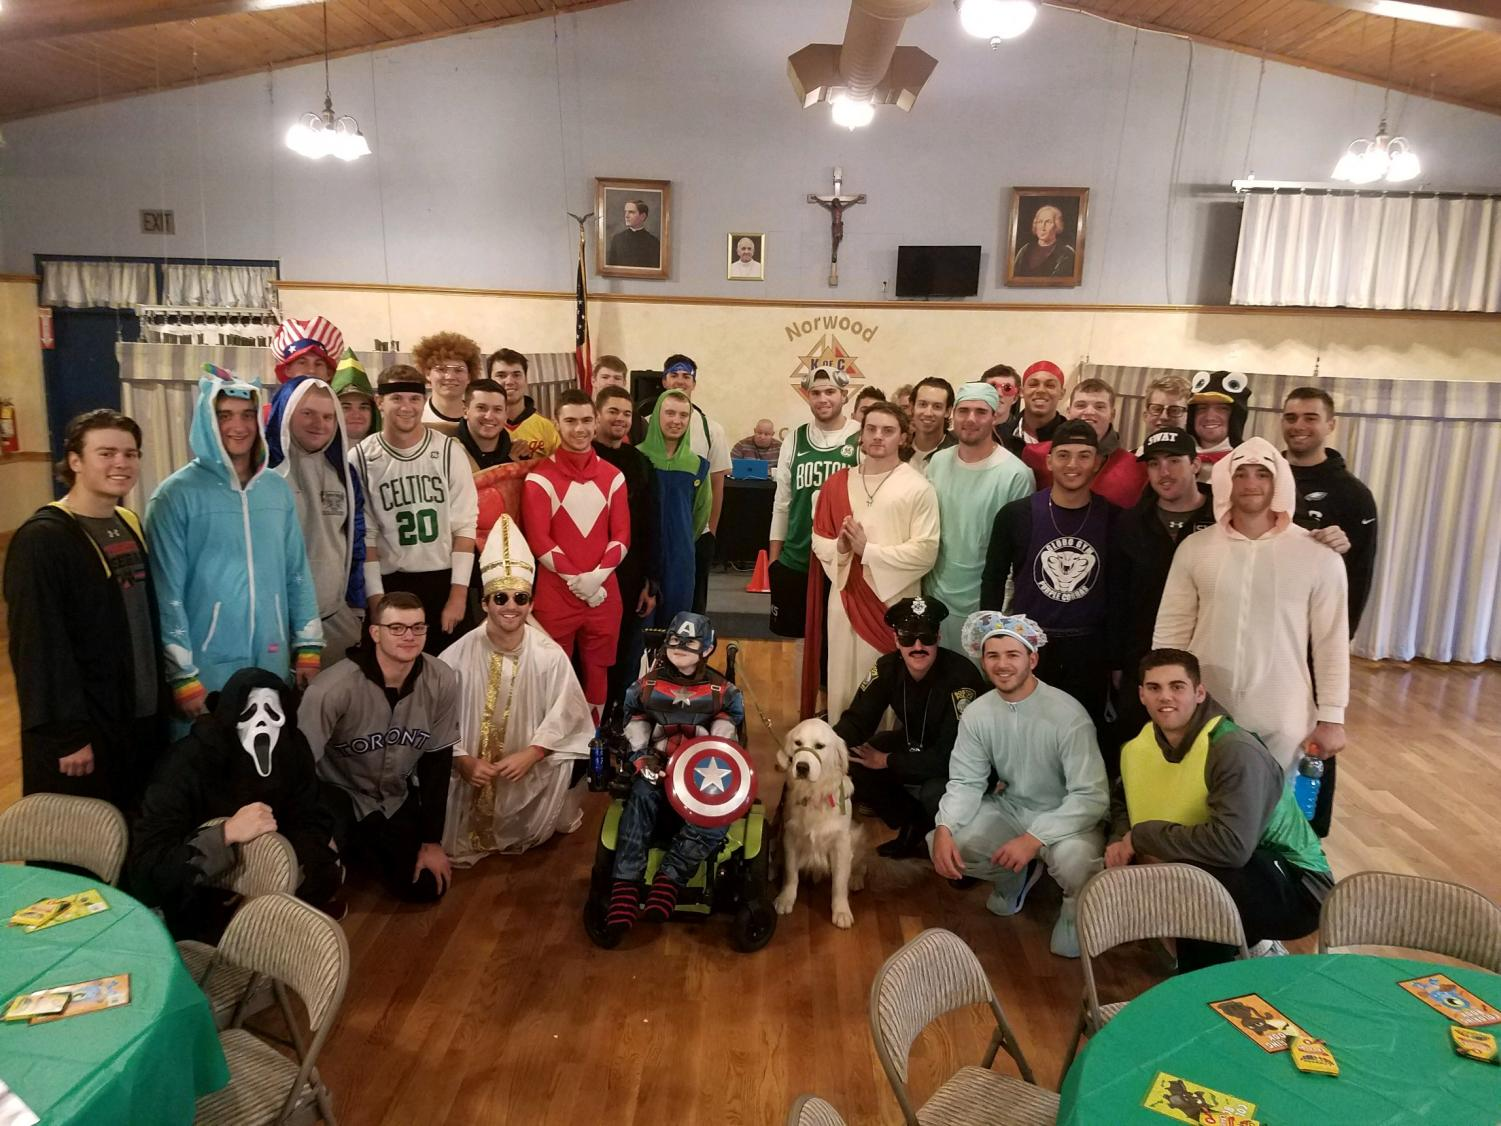 The Northeastern baseball team attends the 2018 Miles for Liam 5K Walk/Run on Oct. 31 as one of their 19 Ways events.